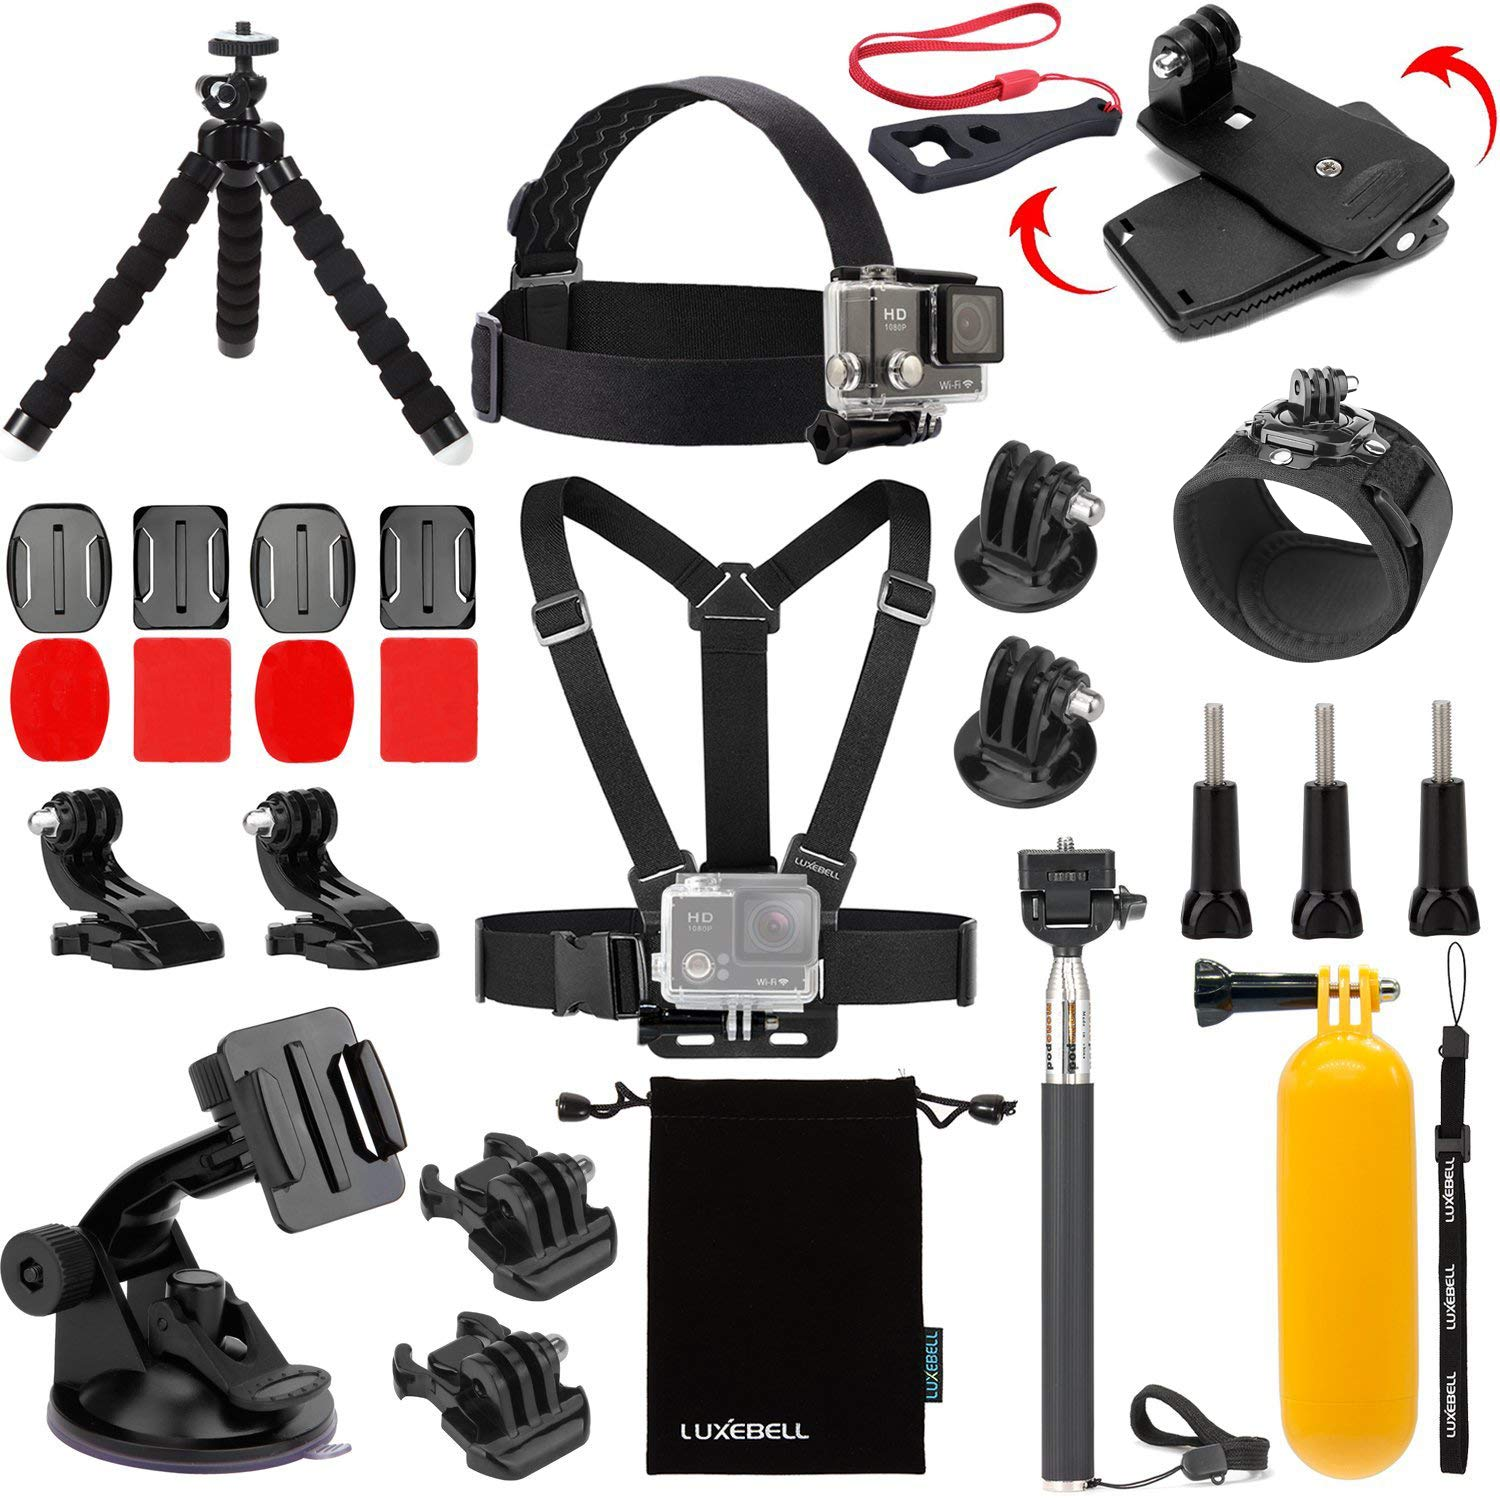 Luxebell 13-in-1 Essentials Accessories Kit for Gopro Hero 4 Session Black Silver Hero+ LCD 3+/3/2 Camera and Sjcam Sj4000 Sj5000 - Chest Mount Harness / Head Strap / Float Grip / Selfie Stick GP0041